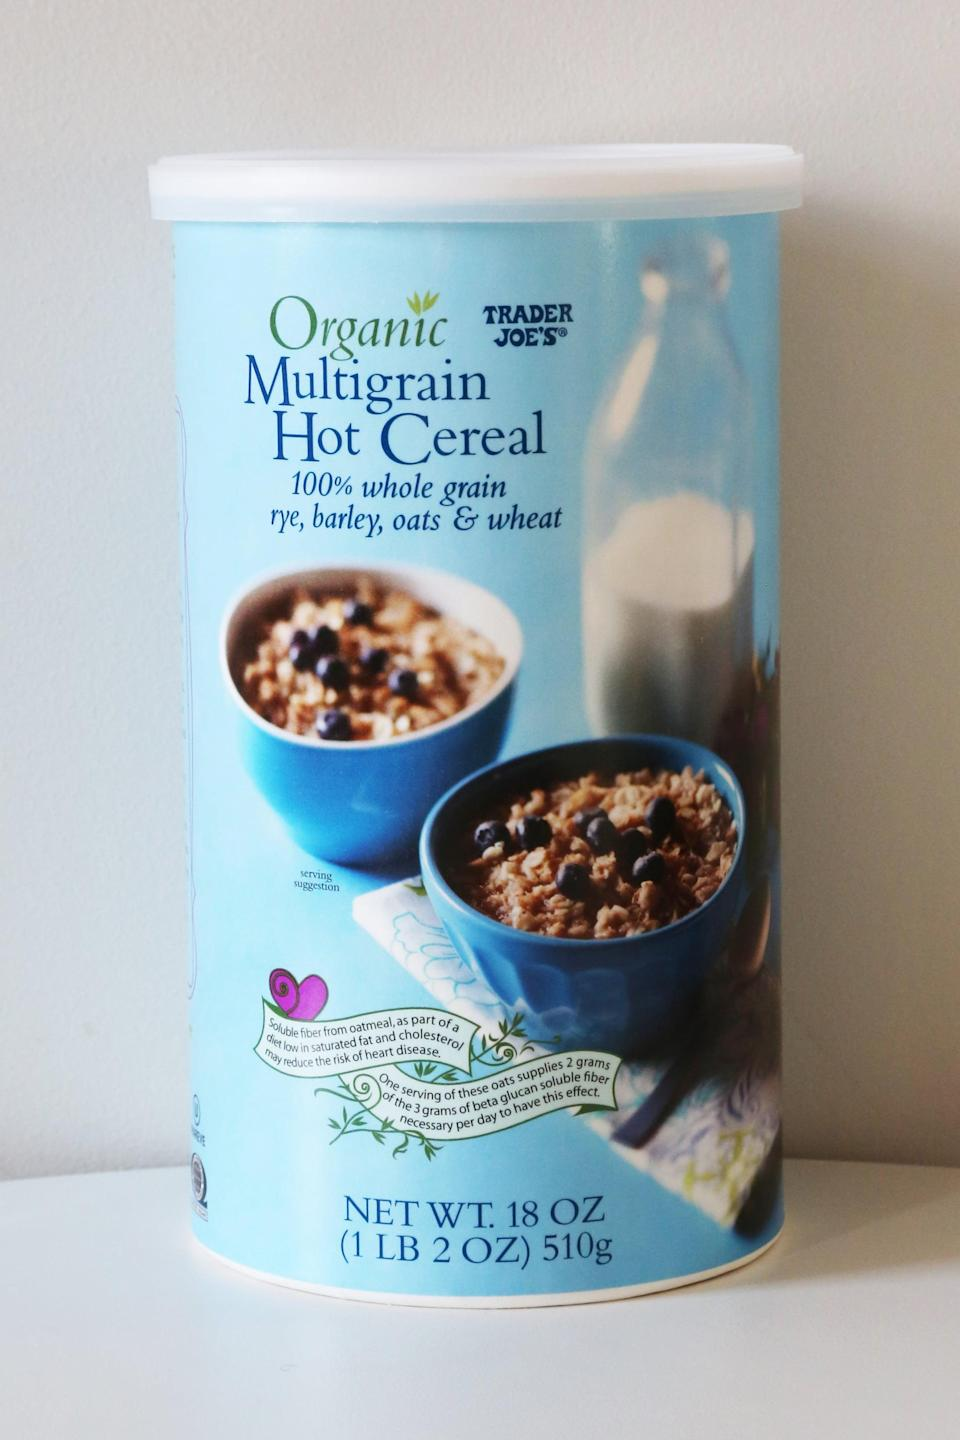 <p>Containing rye, barley, and oats, this hot cereal can be cooked on the stove or in the microwave. Top it with chia seeds, walnuts, and a little fruit for a yummy go-to weekday breakfast.</p>